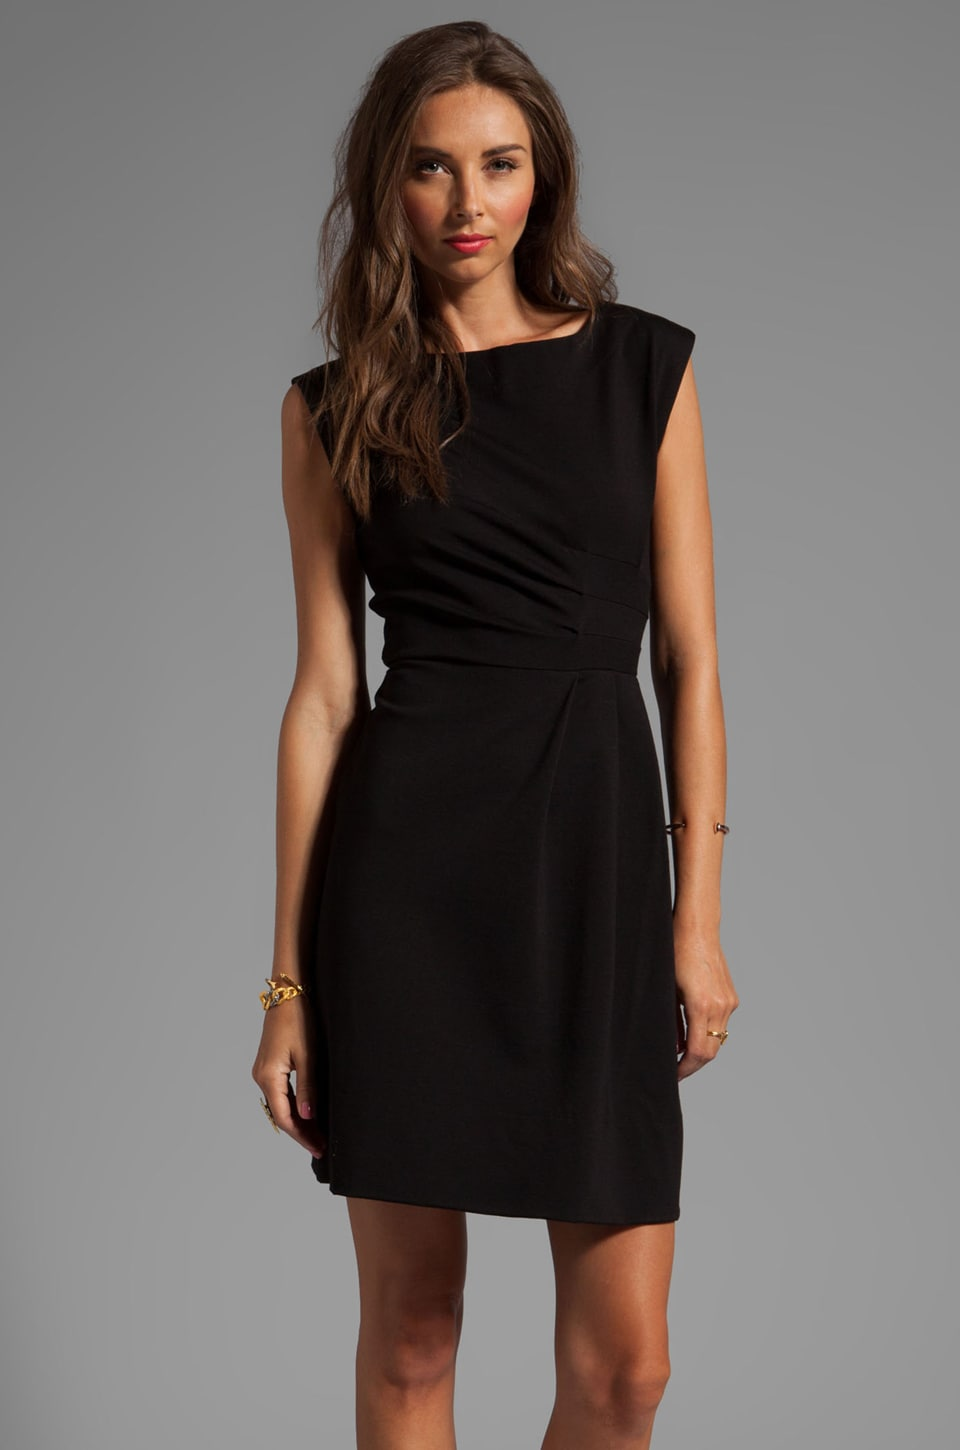 Marc by Marc Jacobs Sophia Ponte Dress in Black